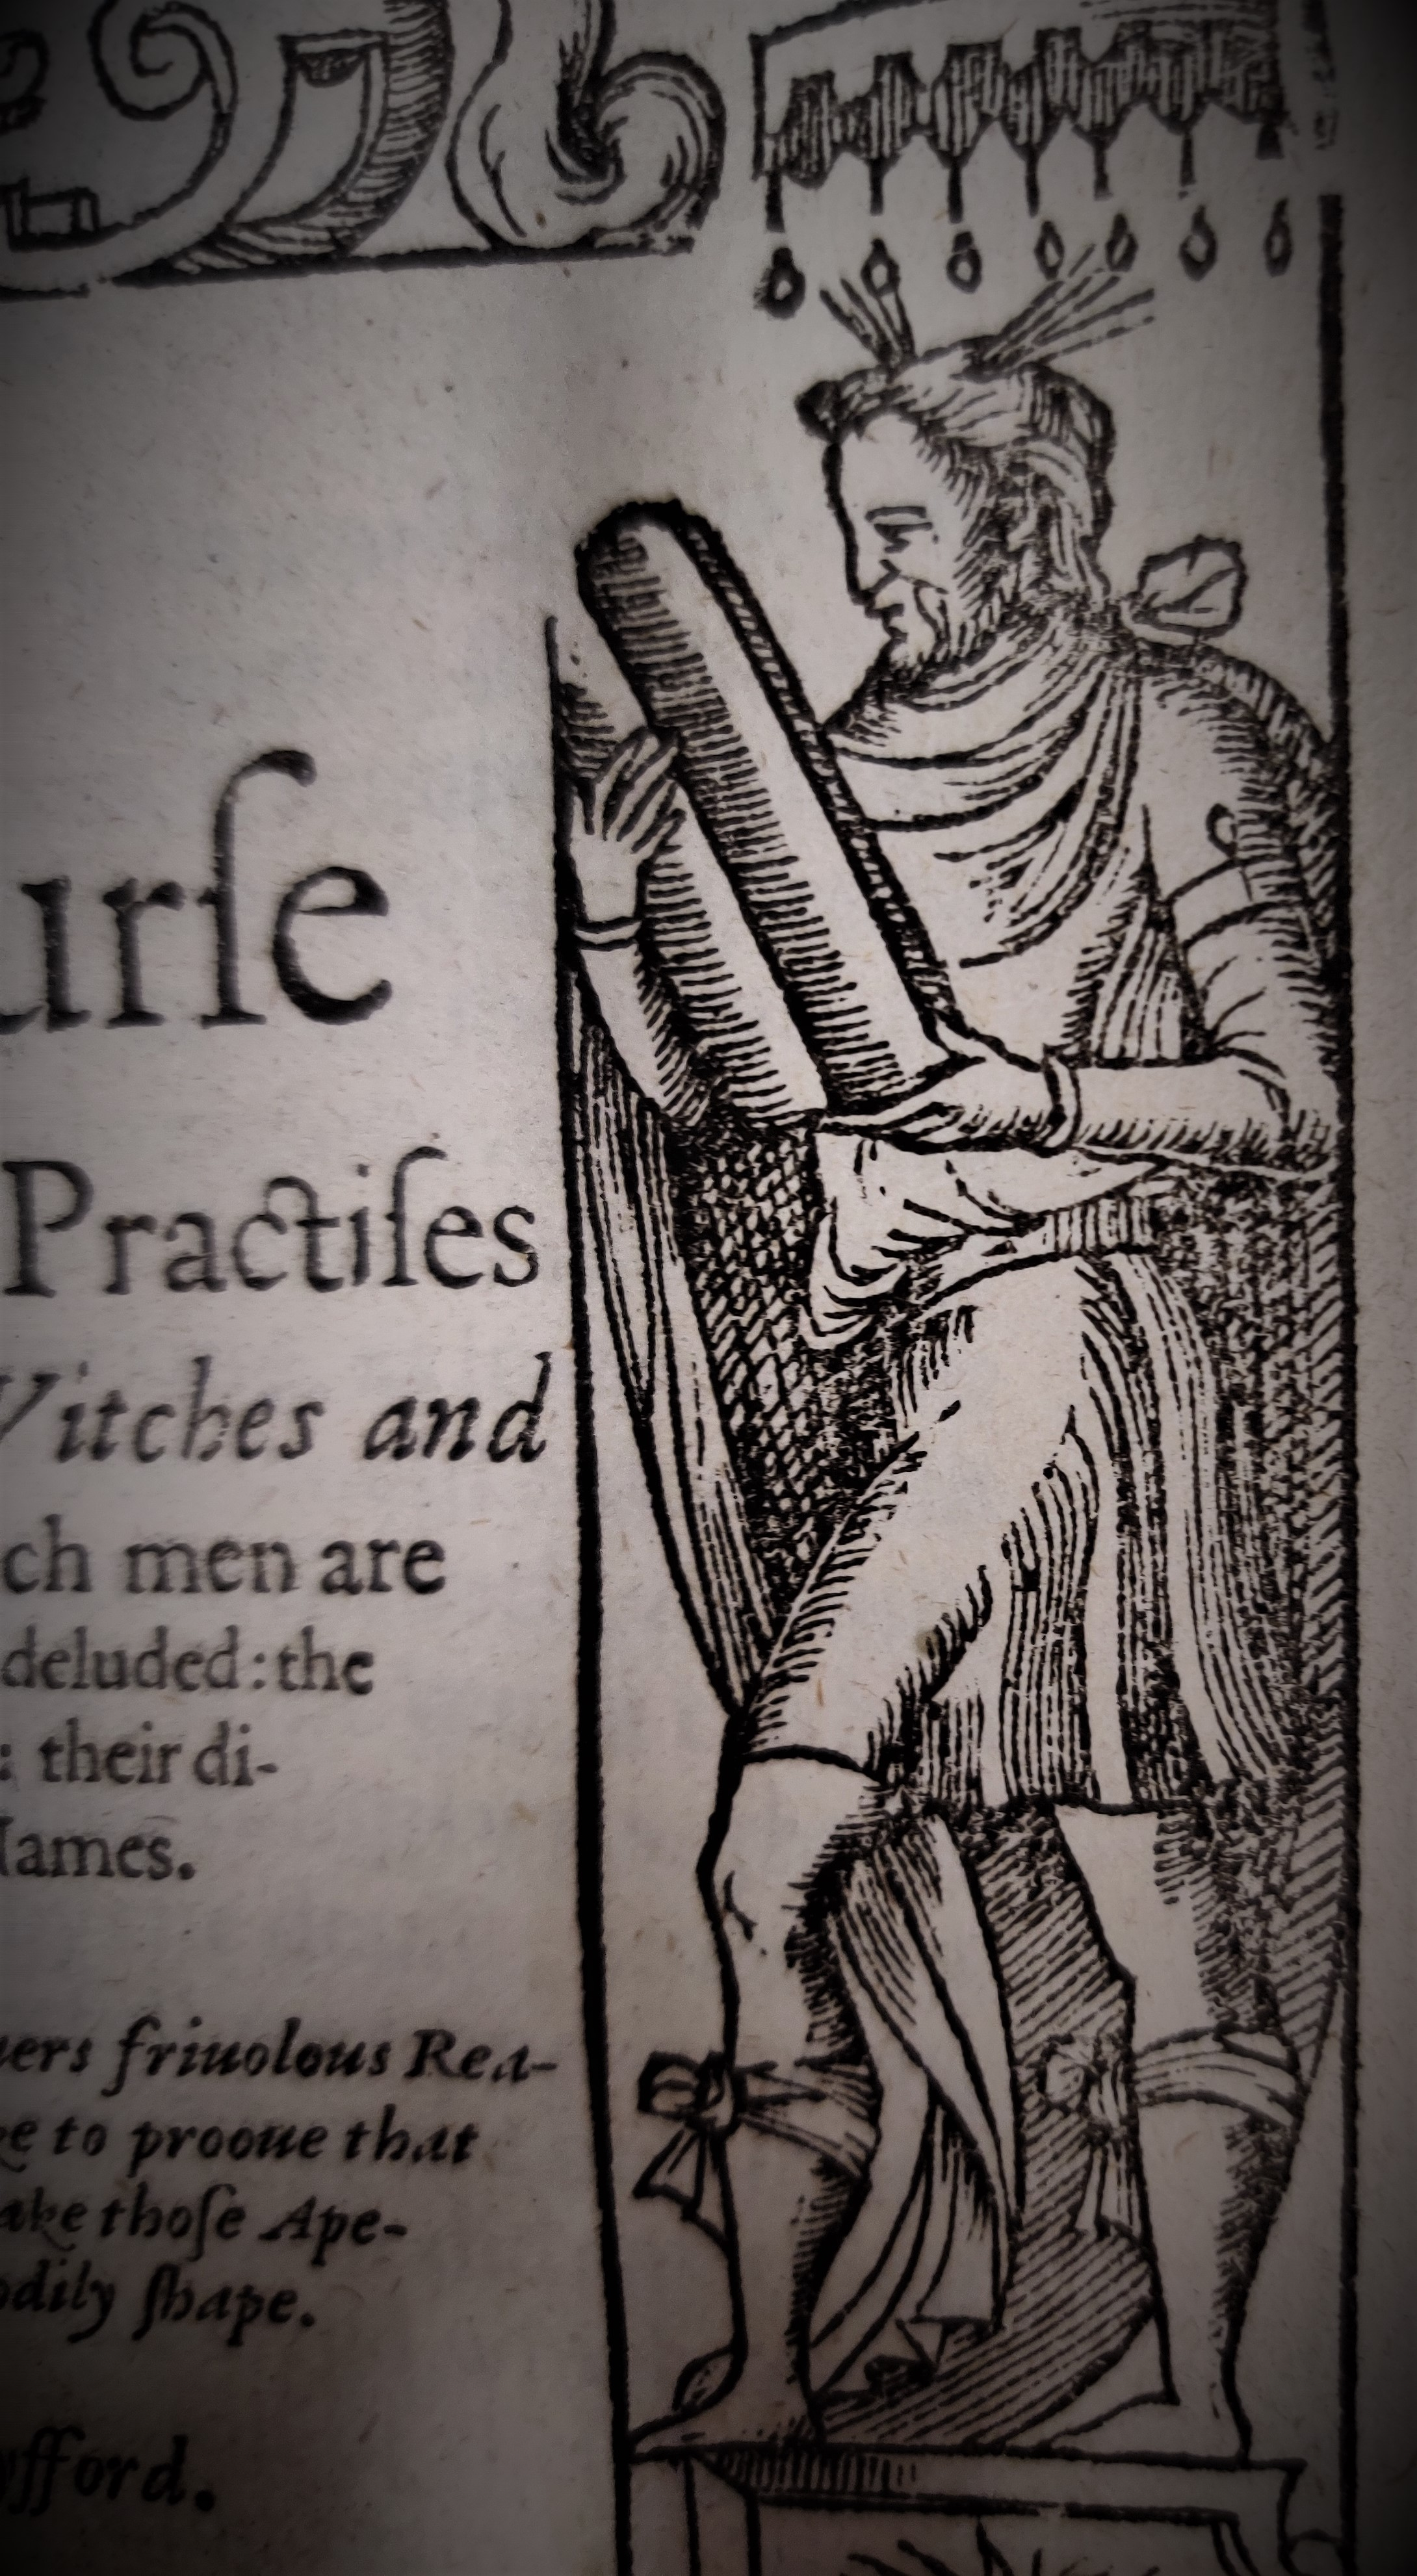 Figure from Figure from title page of A Discourse of the Subtill Practises of Deuilles by Witches and Sorcerers